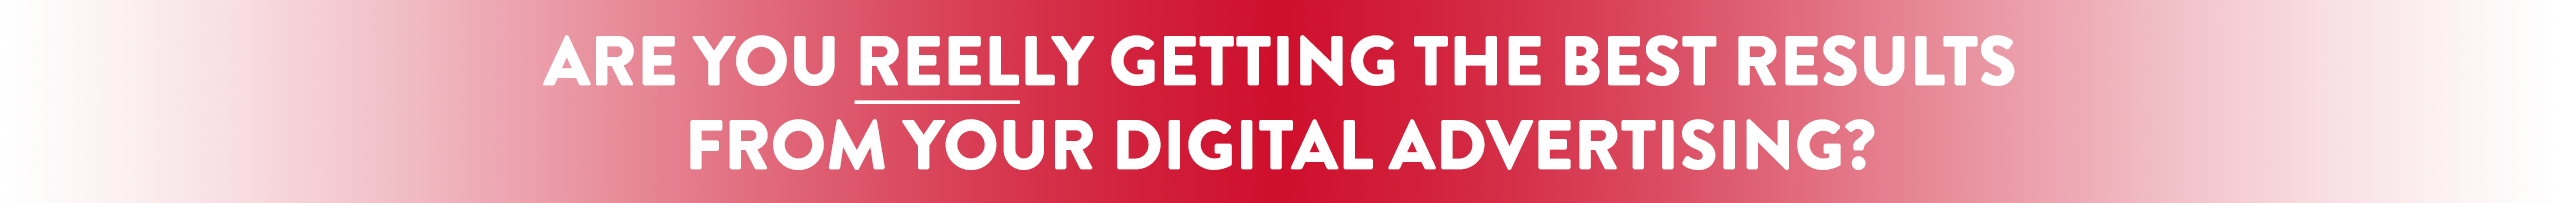 Are you reelly getting the best results from your digital advertising?